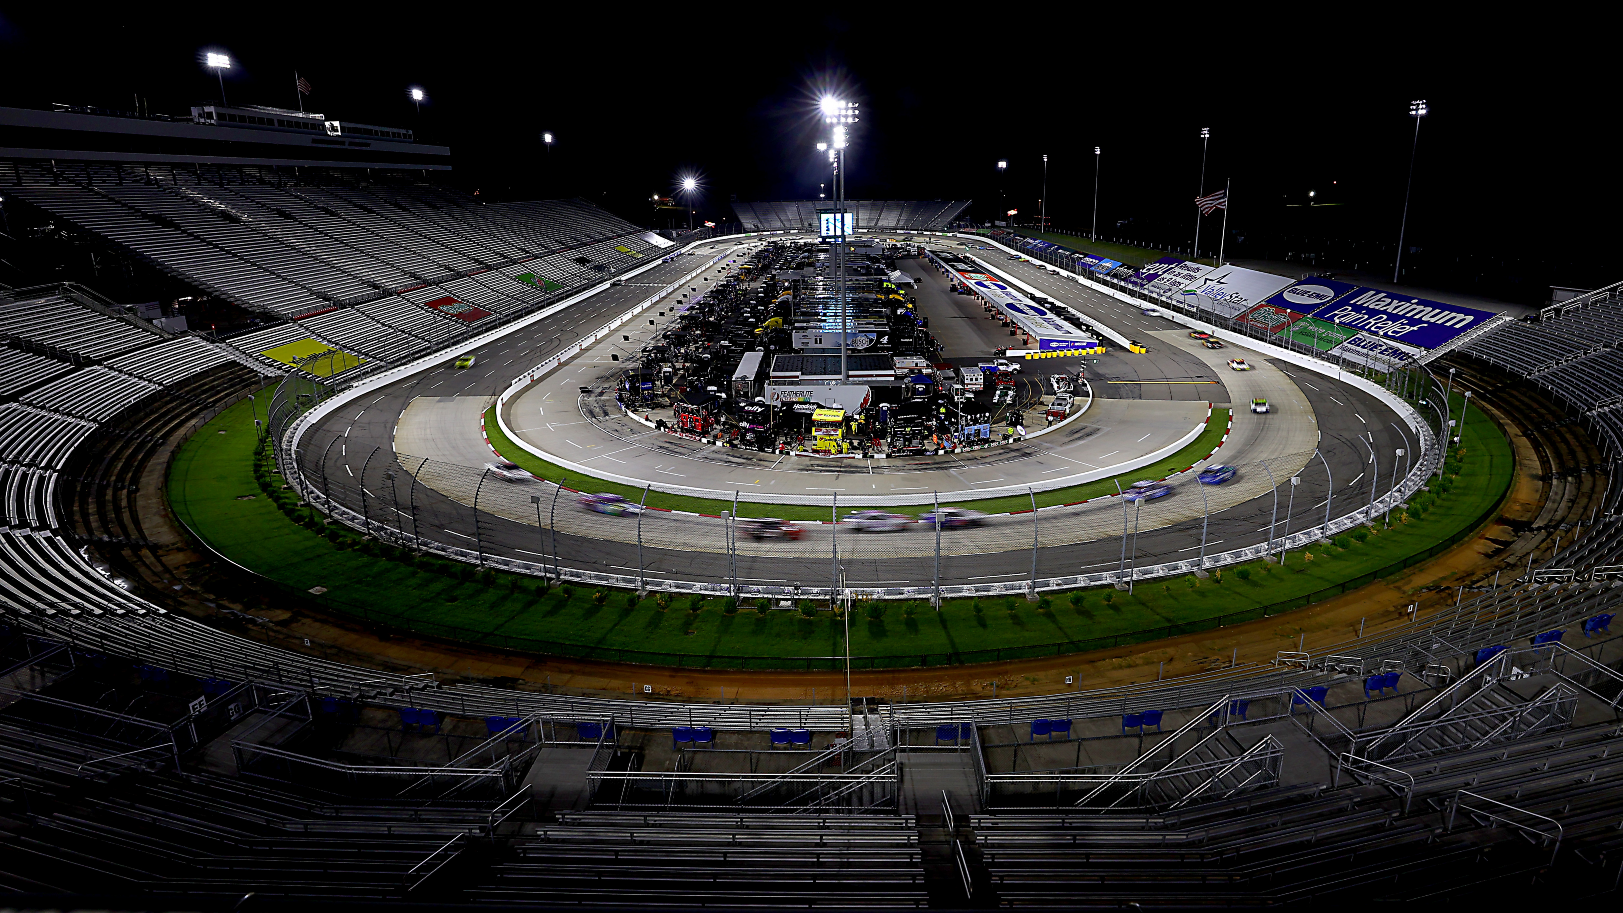 NASCAR lineup in Martinsville: starting order without qualifying for Saturday's race